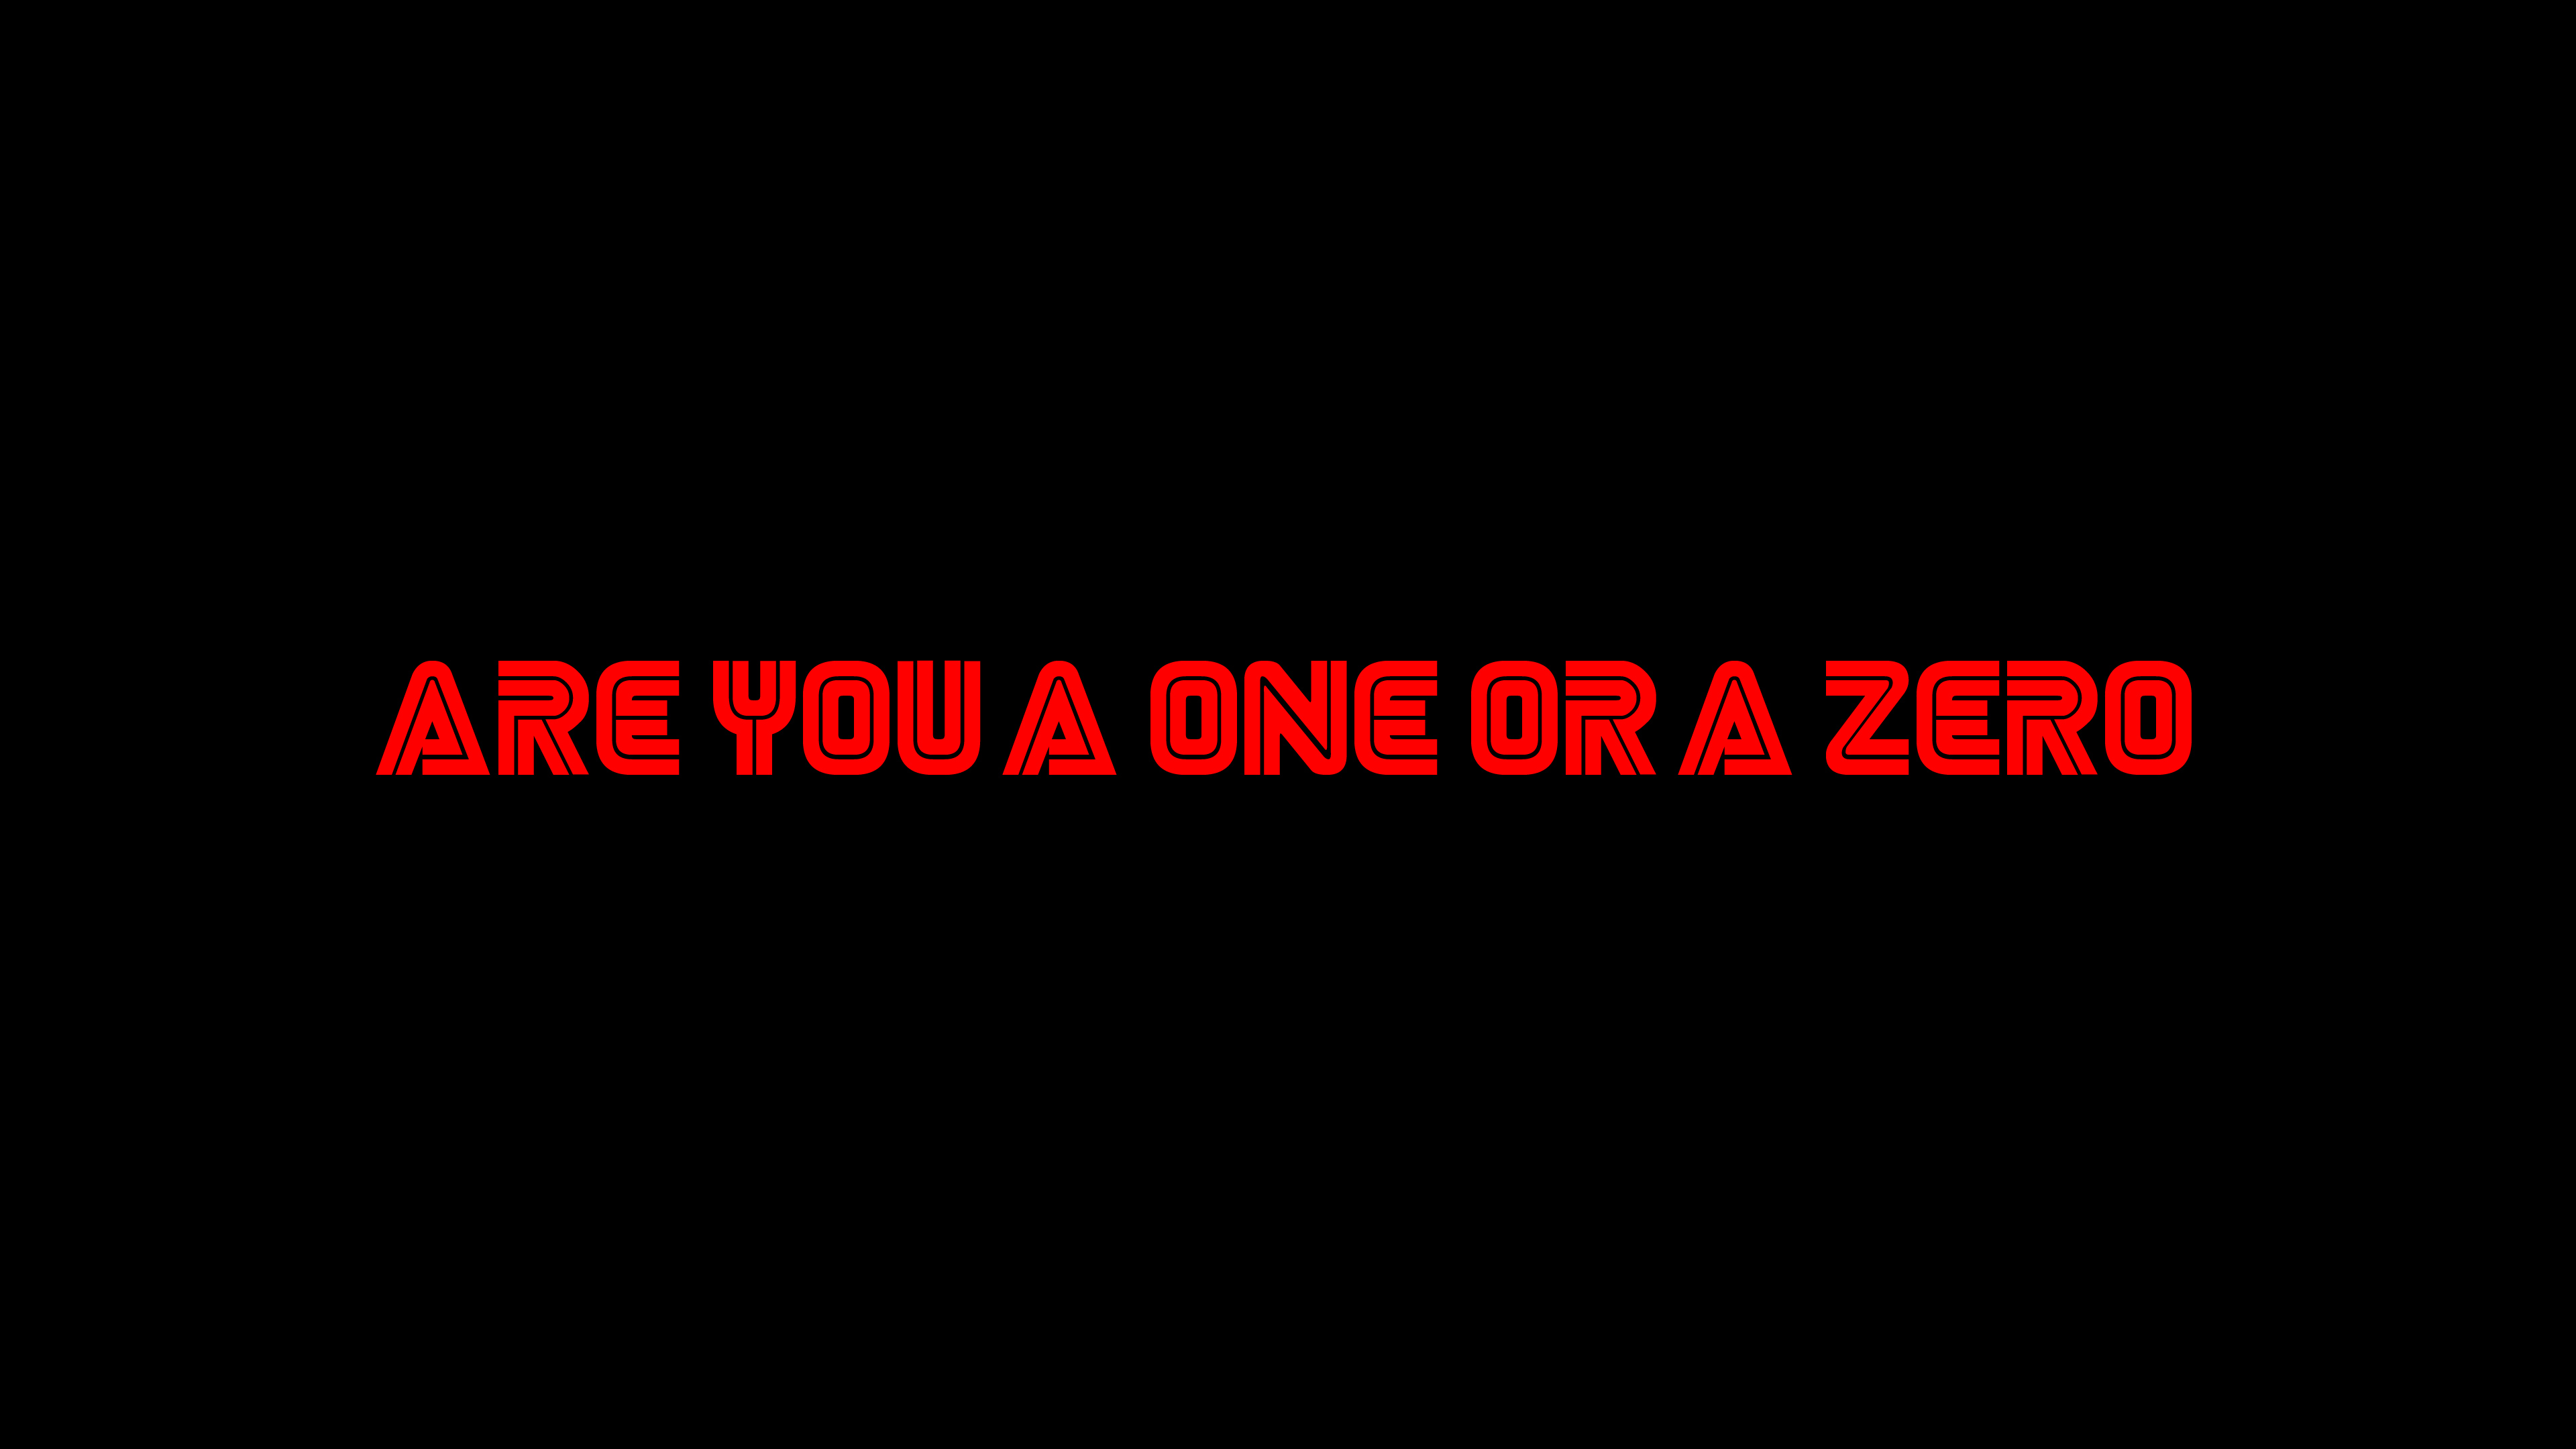 are you a one or a zero mr robot typography 1577915108 - Are You A One Or A Zero Mr Robot Typography -